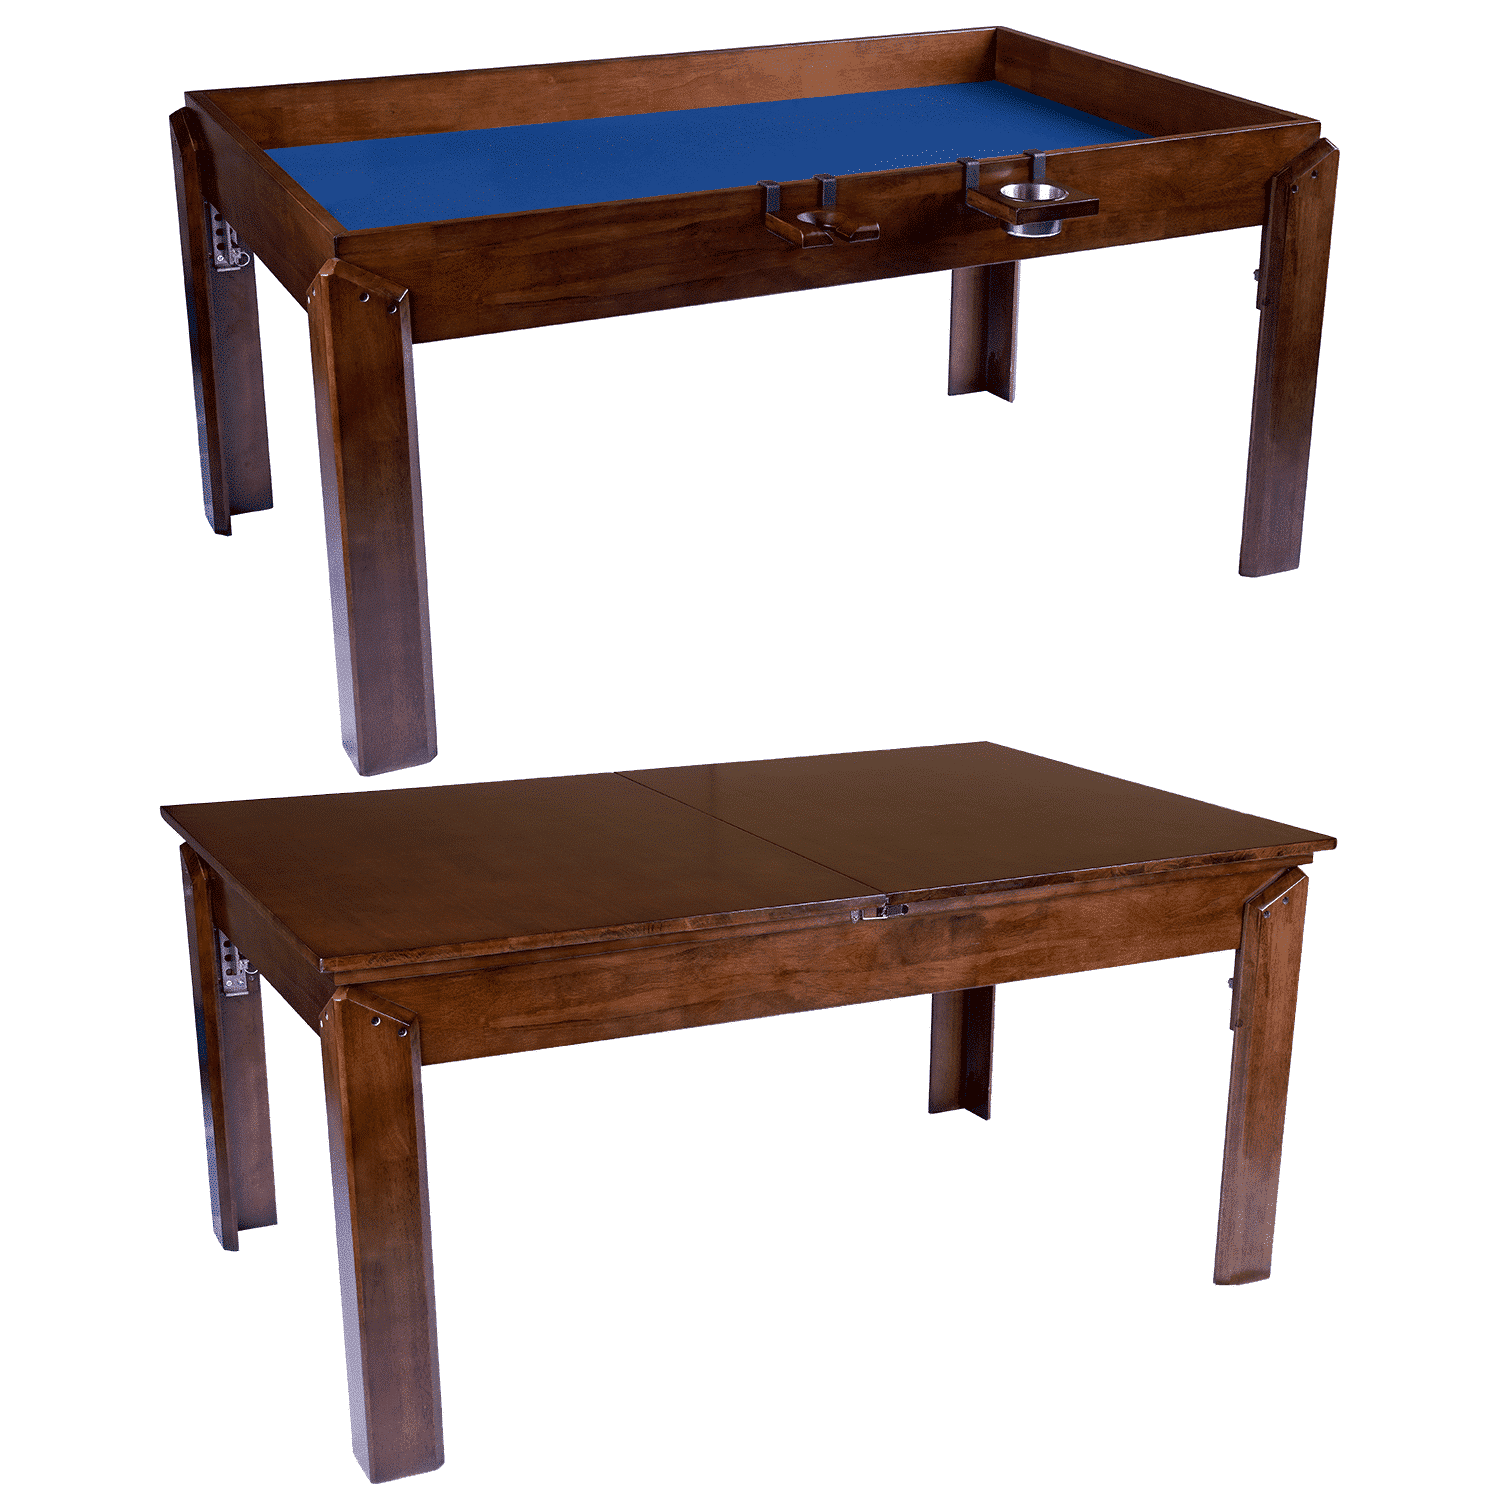 The Nilo Master Table in dark walnut stain shown with and without the Nilo dining topper add-on.